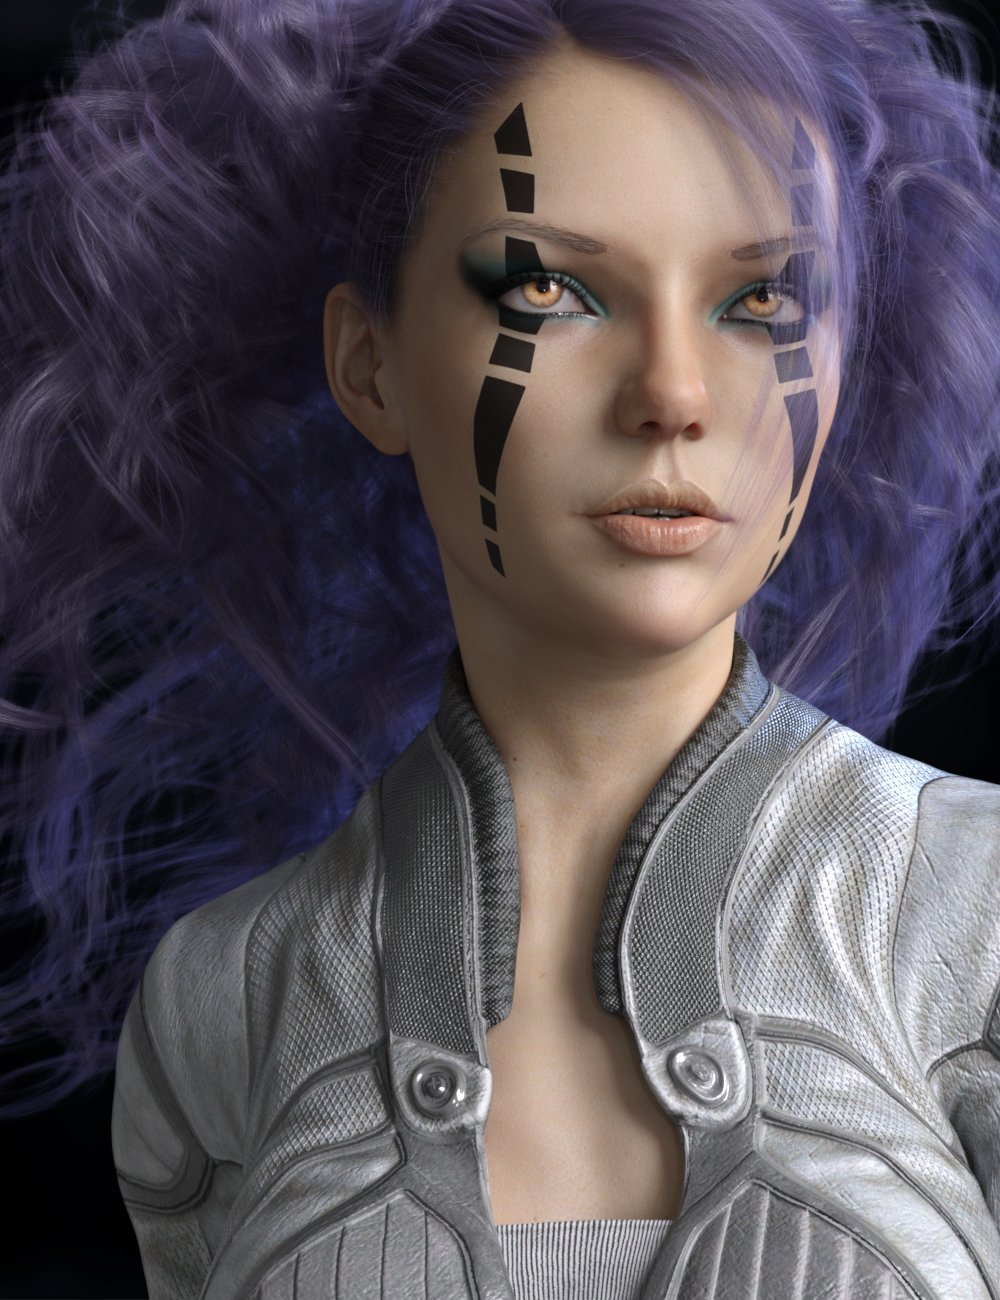 RY Alison for Victoria 8 by: Raiya, 3D Models by Daz 3D